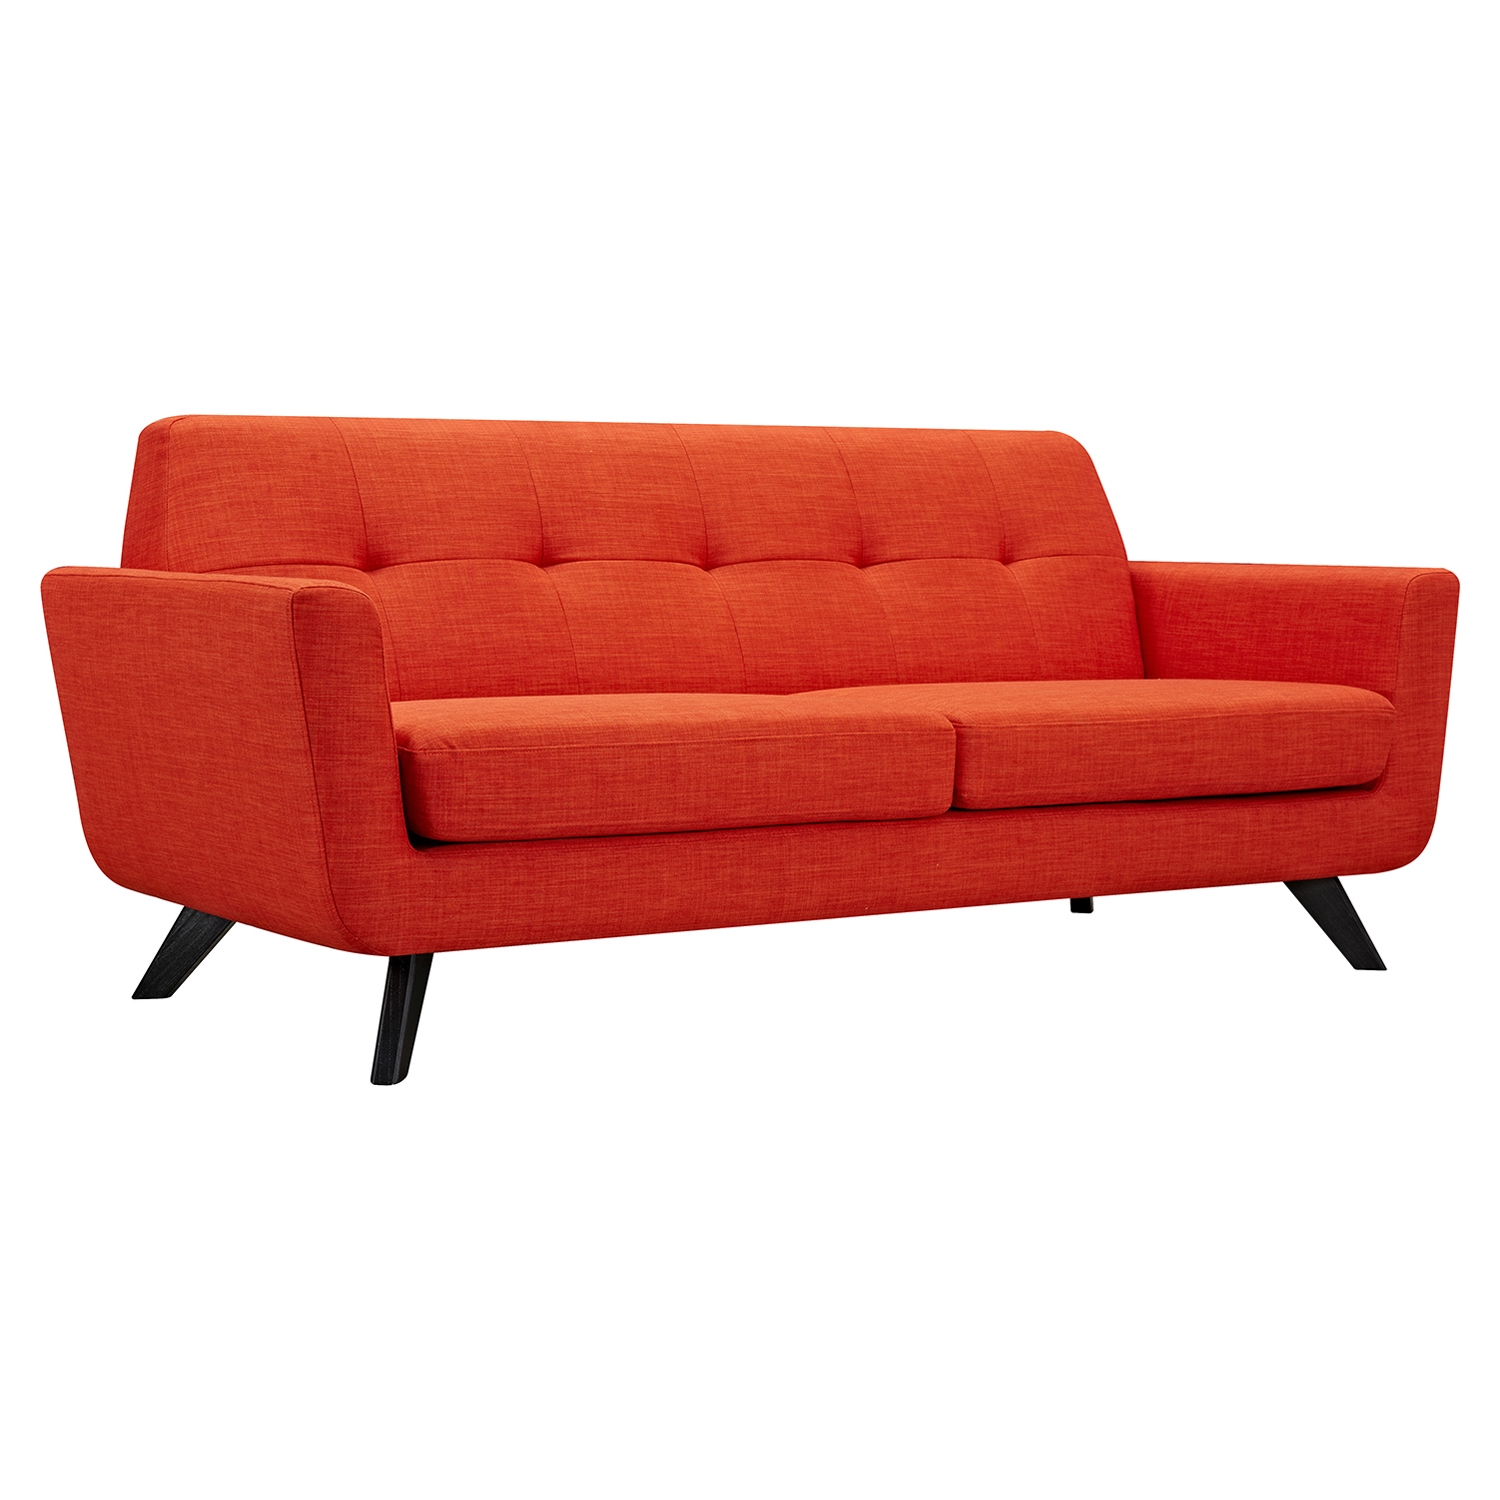 Dania Tufted Upholstery Sofa - Retro Orange - NYEK-224467